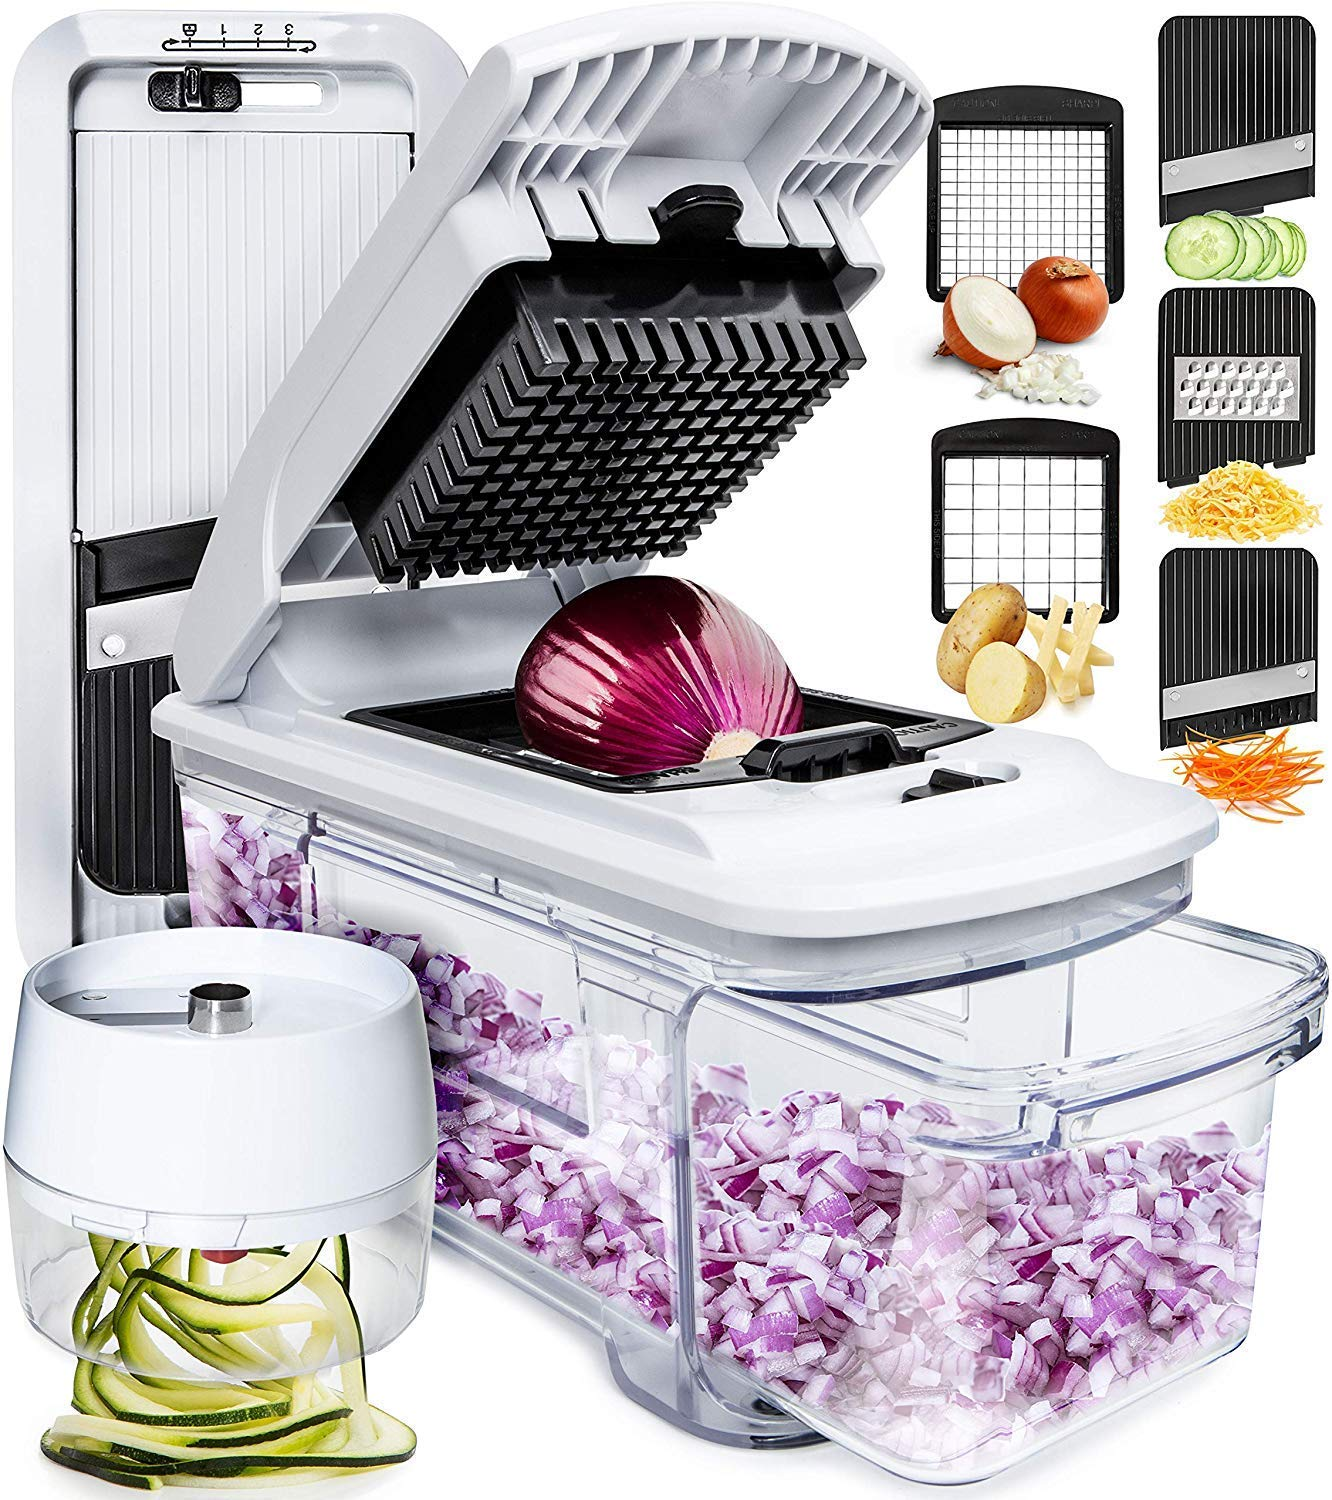 Review of Fullstar Mandoline Slicer Spiralizer Vegetable Slicer and Vegetable Chopper